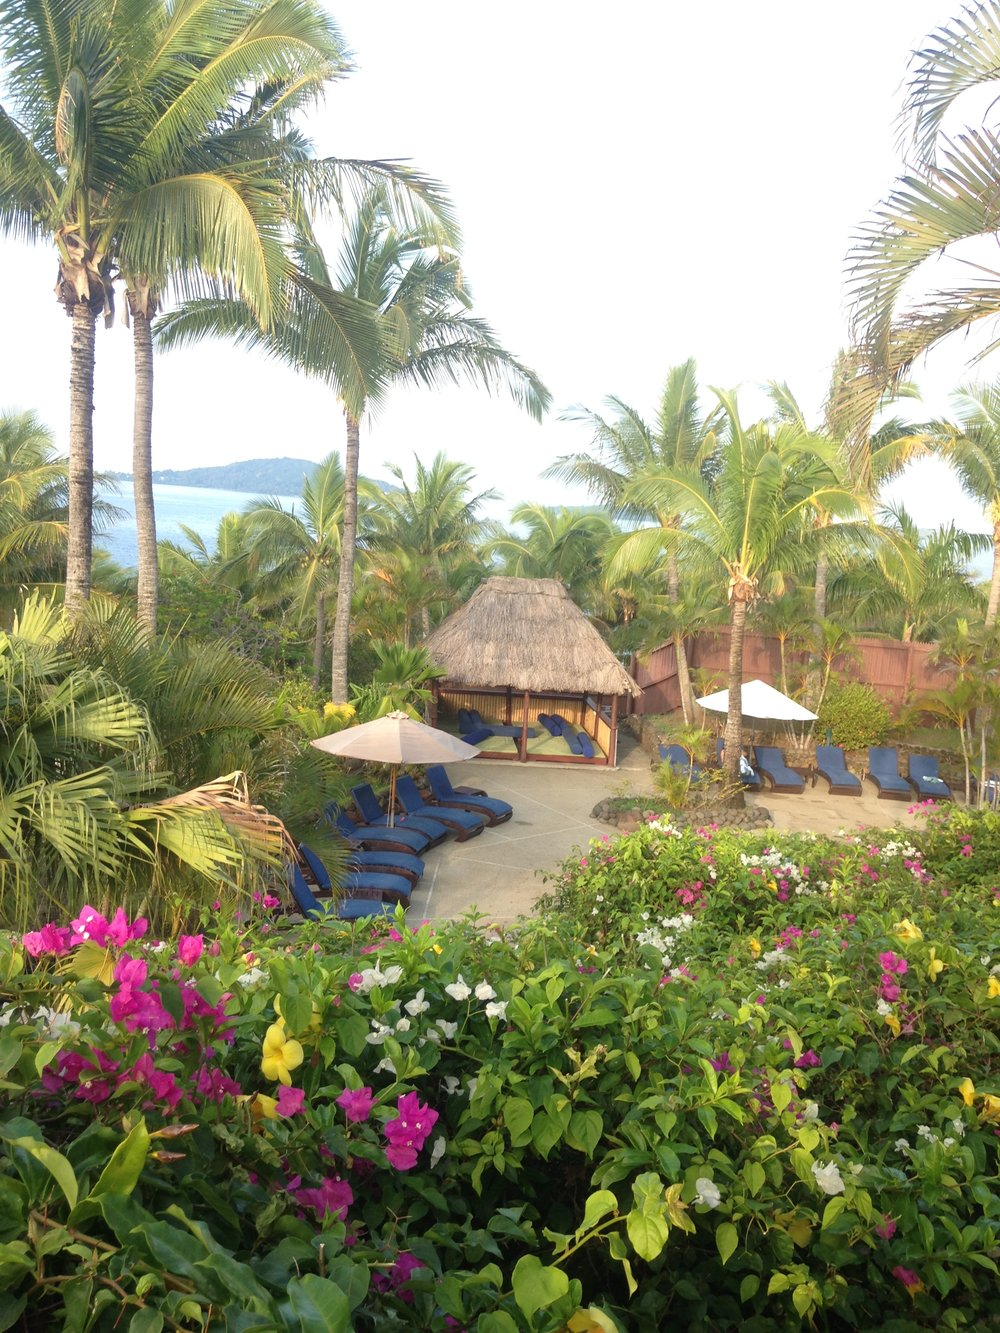 Wananavu Beach Resort, is off the beaten-track and truely far from the crowds of other Fijian resorts.